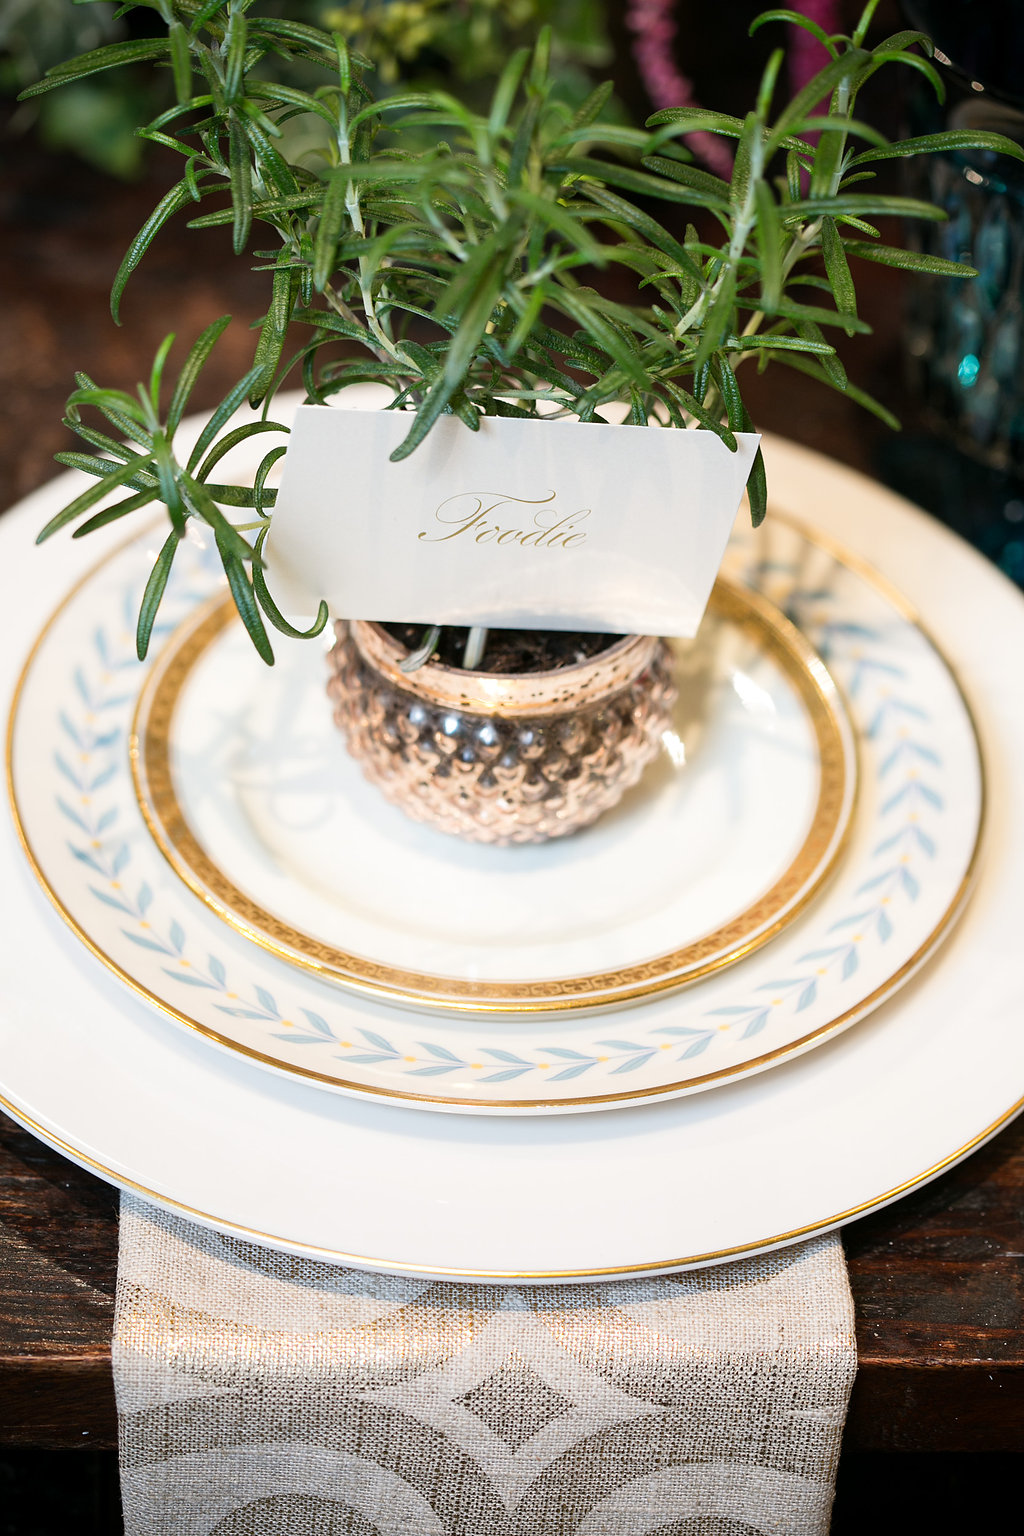 Genevieve Lauren Photography  |  Design that Flies  |  Atmosphere Event Group  |  Vintage Place Settings  |   Sugar Fixe  |  The Simply Elegant Group